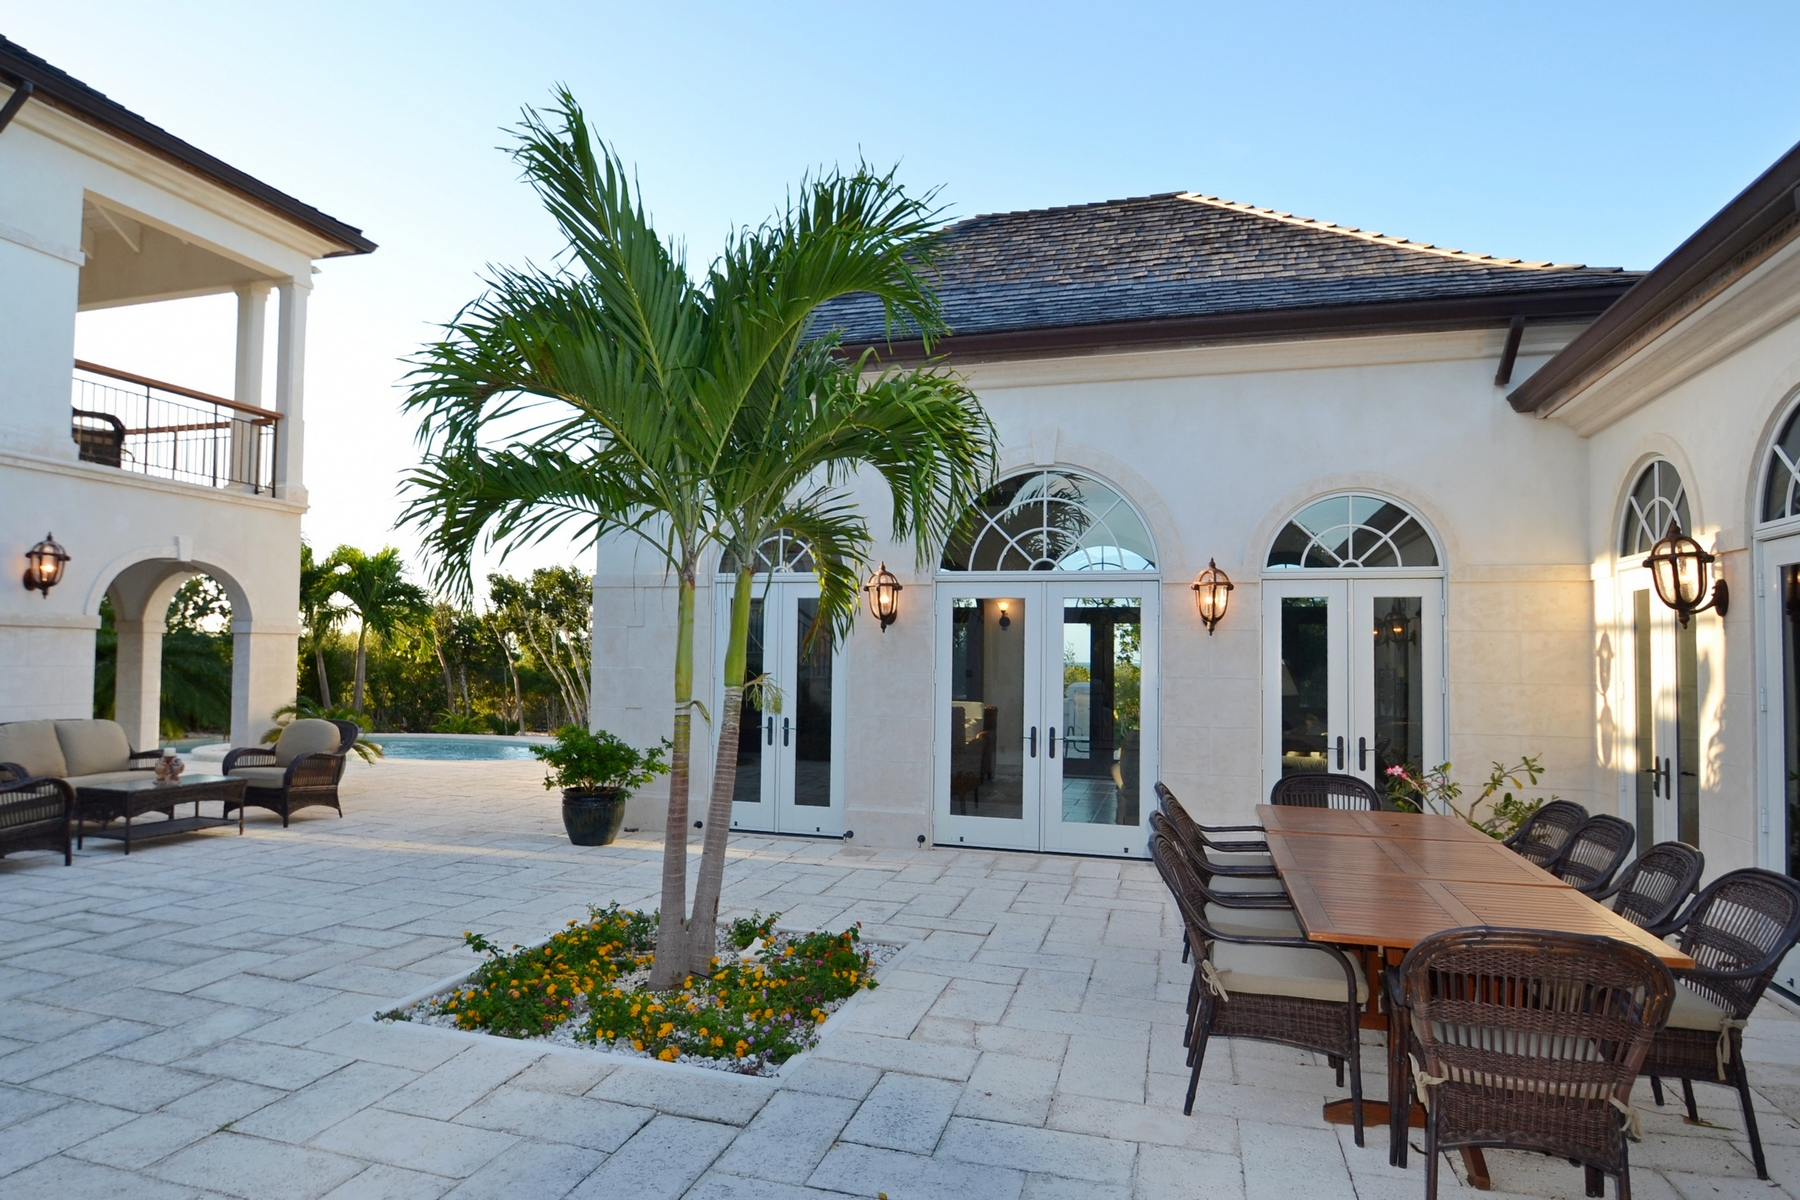 Additional photo for property listing at Casa Barana Beachfront Thompson Cove, Providenciales TCI BWI Turks And Caicos Islands